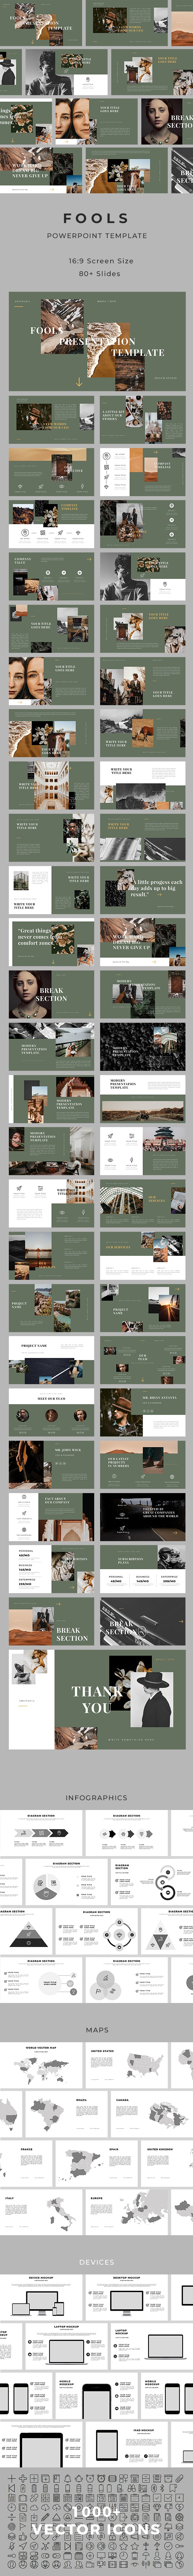 Fools PowerPoint Template - PowerPoint Templates Presentation Templates